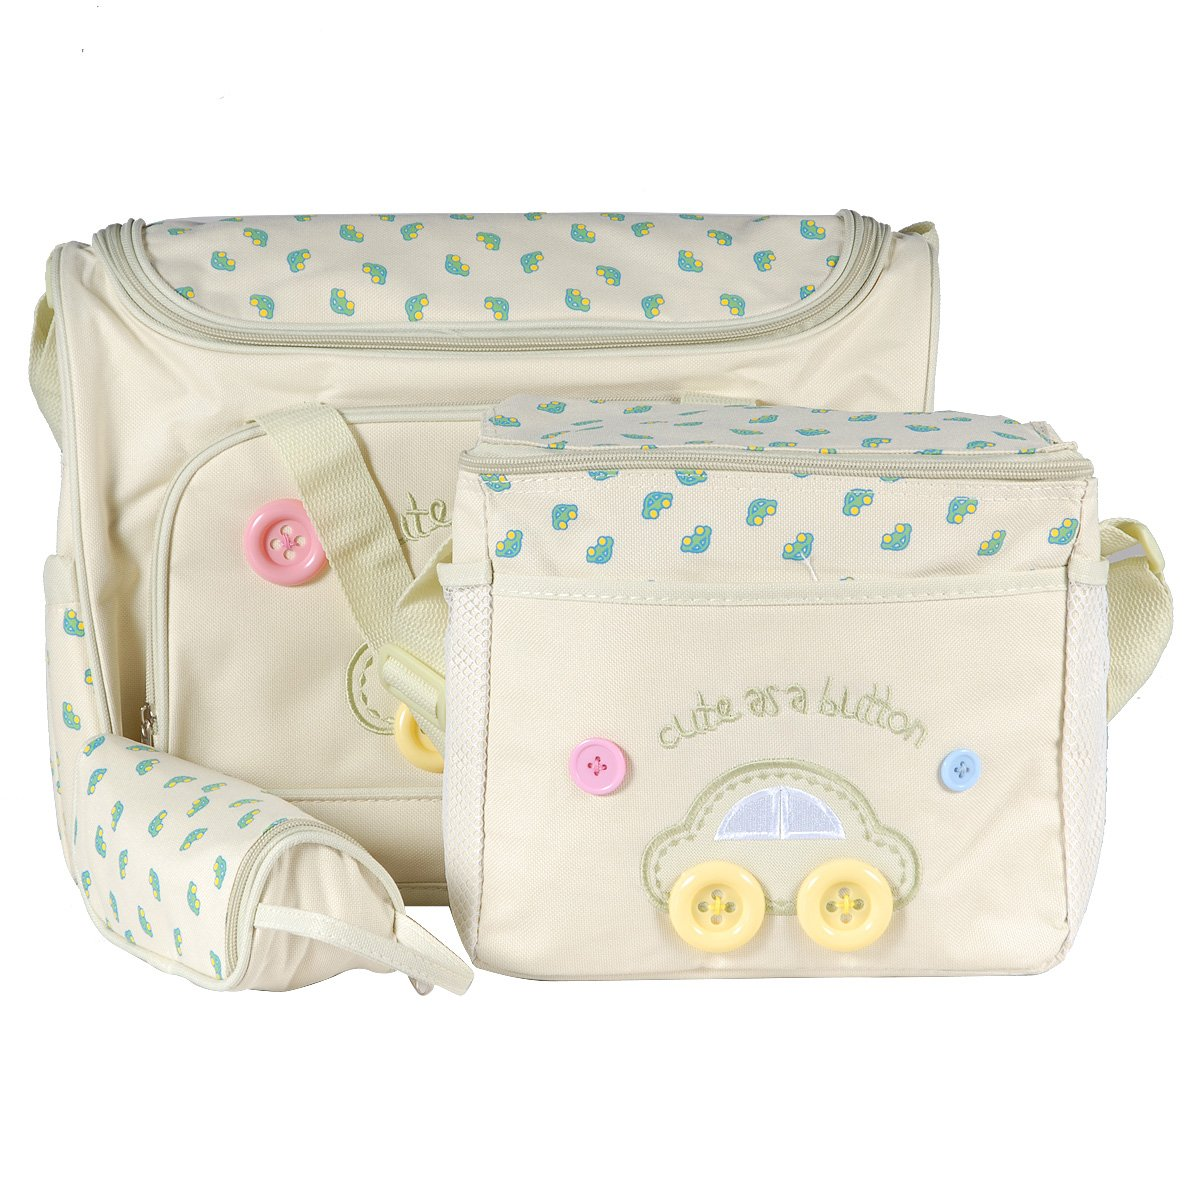 SurePromise 4 PCS Cute Lovely Brand New Button Embroidery Baby Diaper Nappy Changing Bag